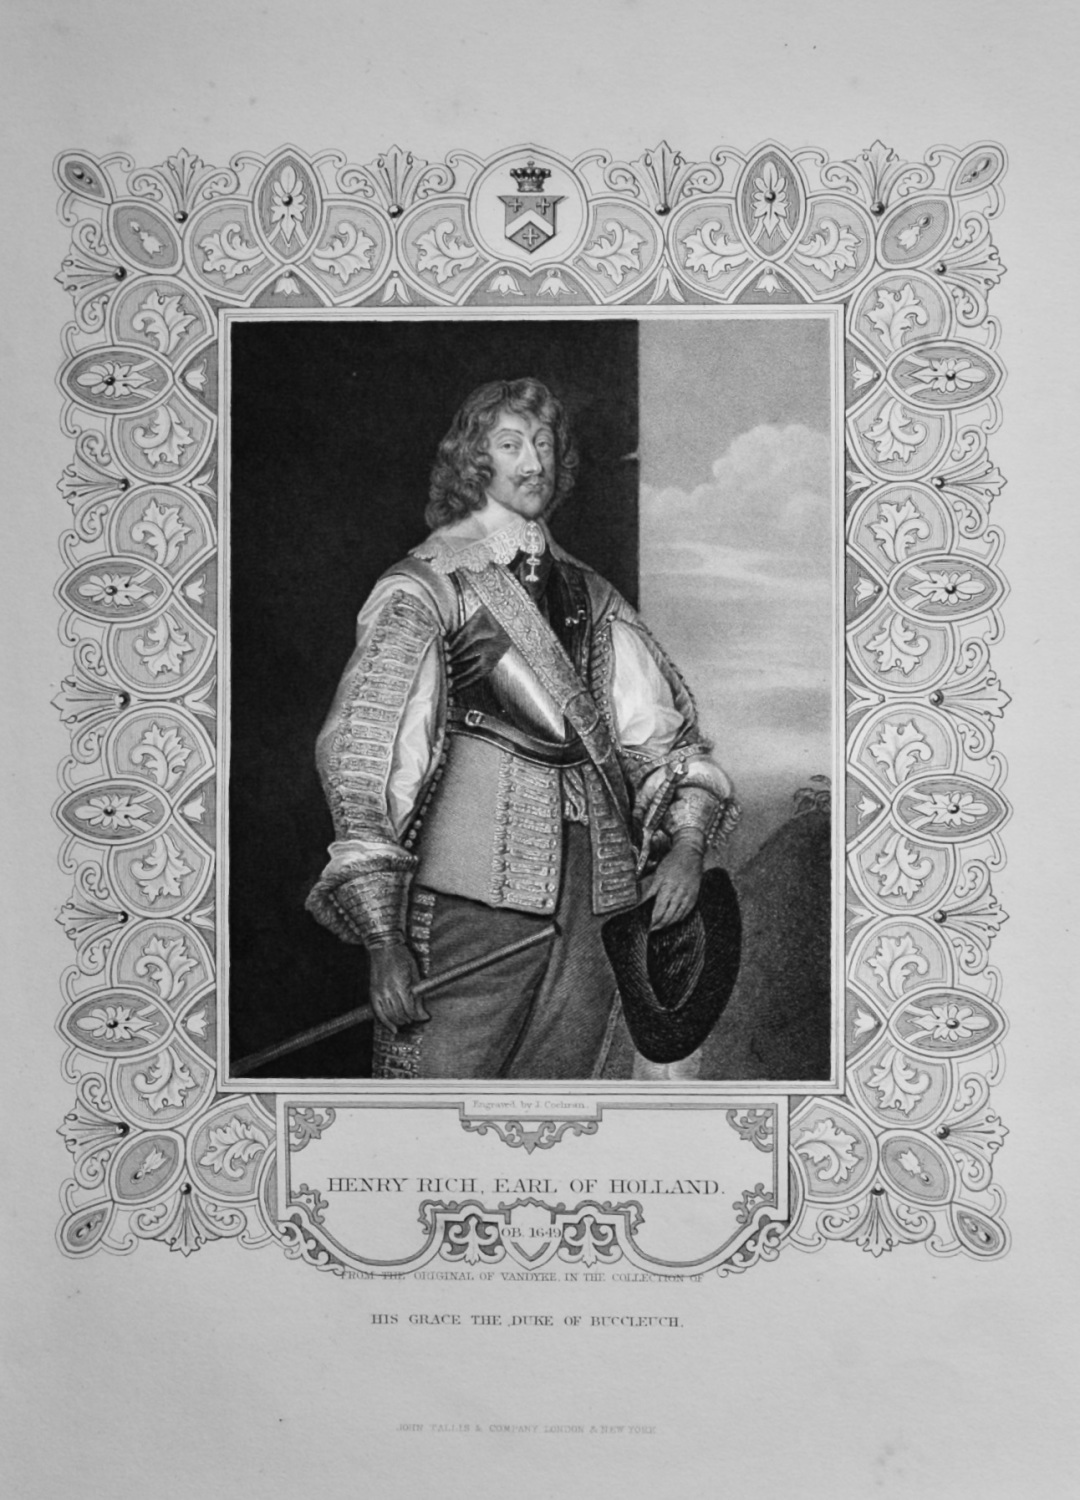 Henry Rich, Earl of Holland.